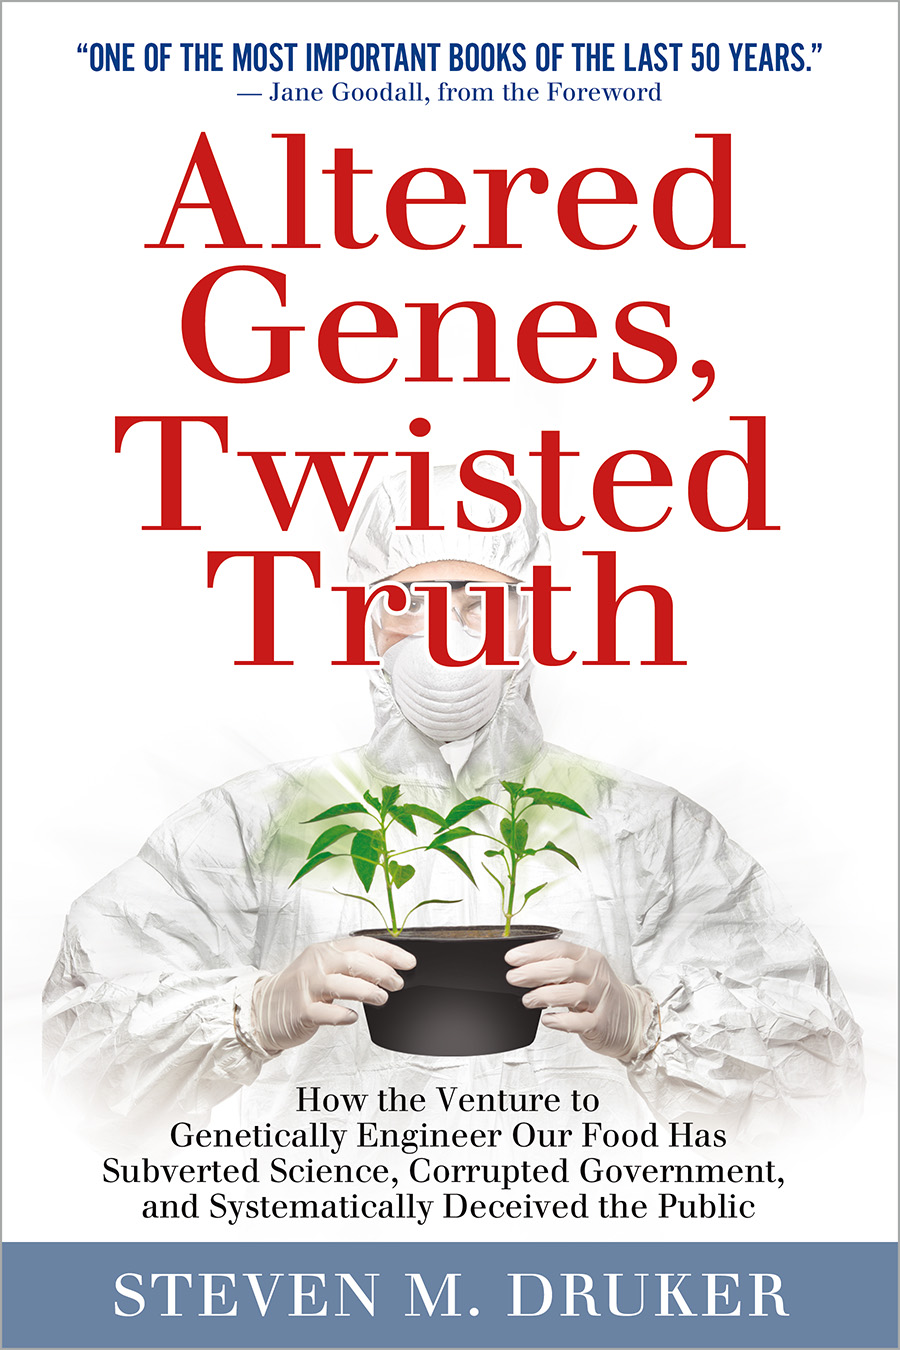 The Altered Genes